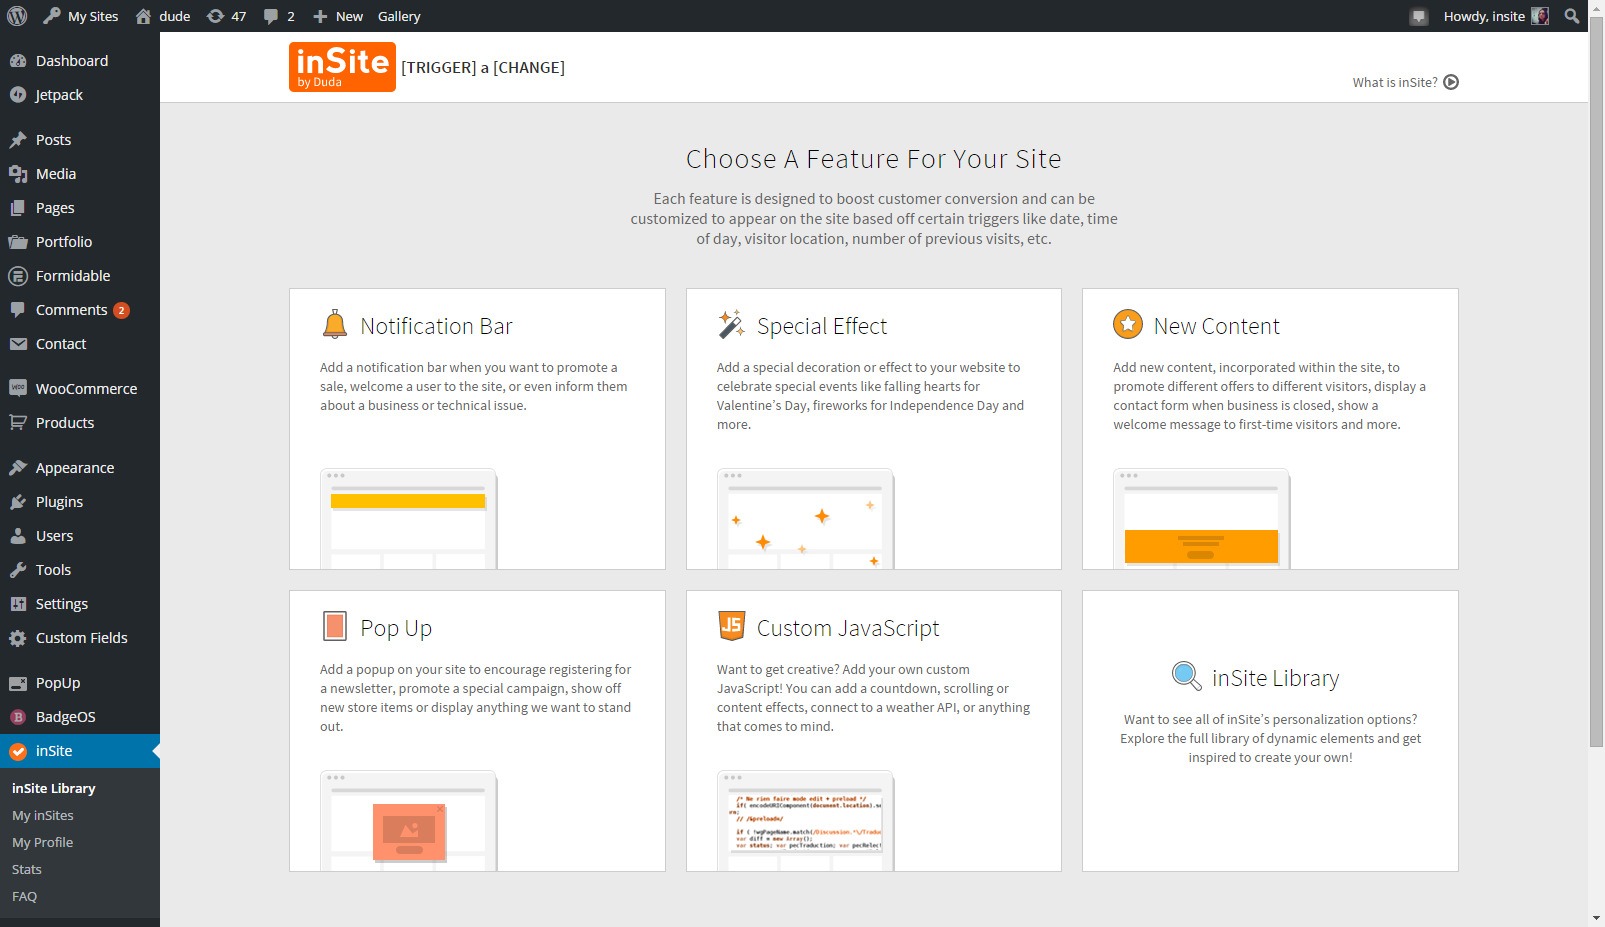 insite-for-wp-personalization-made-easy screenshot 1